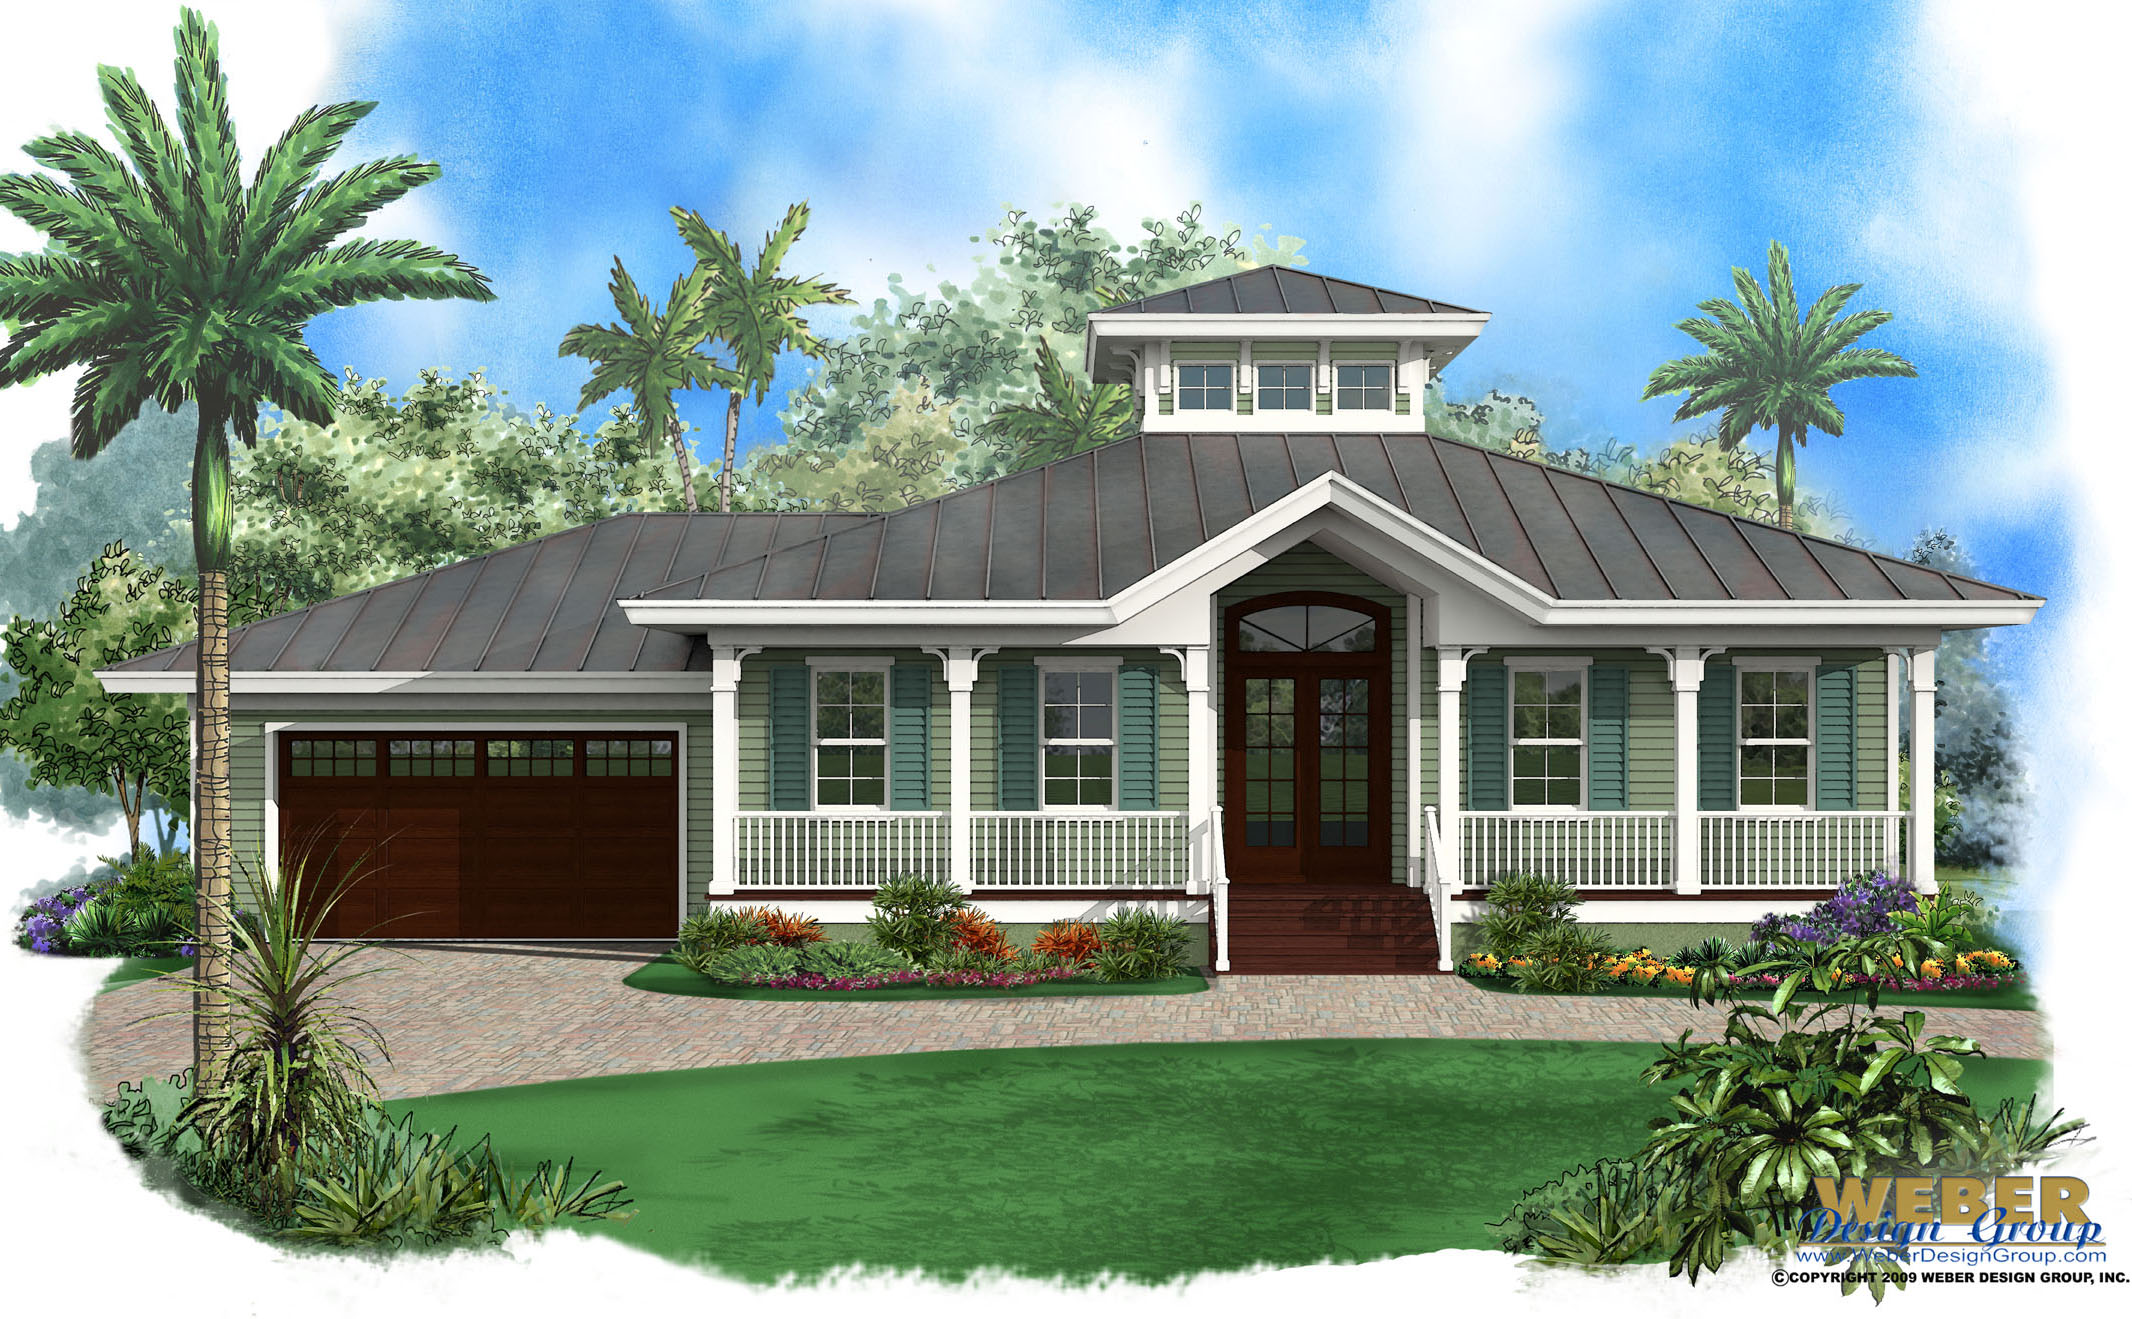 Key west house plans key west island style home floor plans for 4 story beach house plans